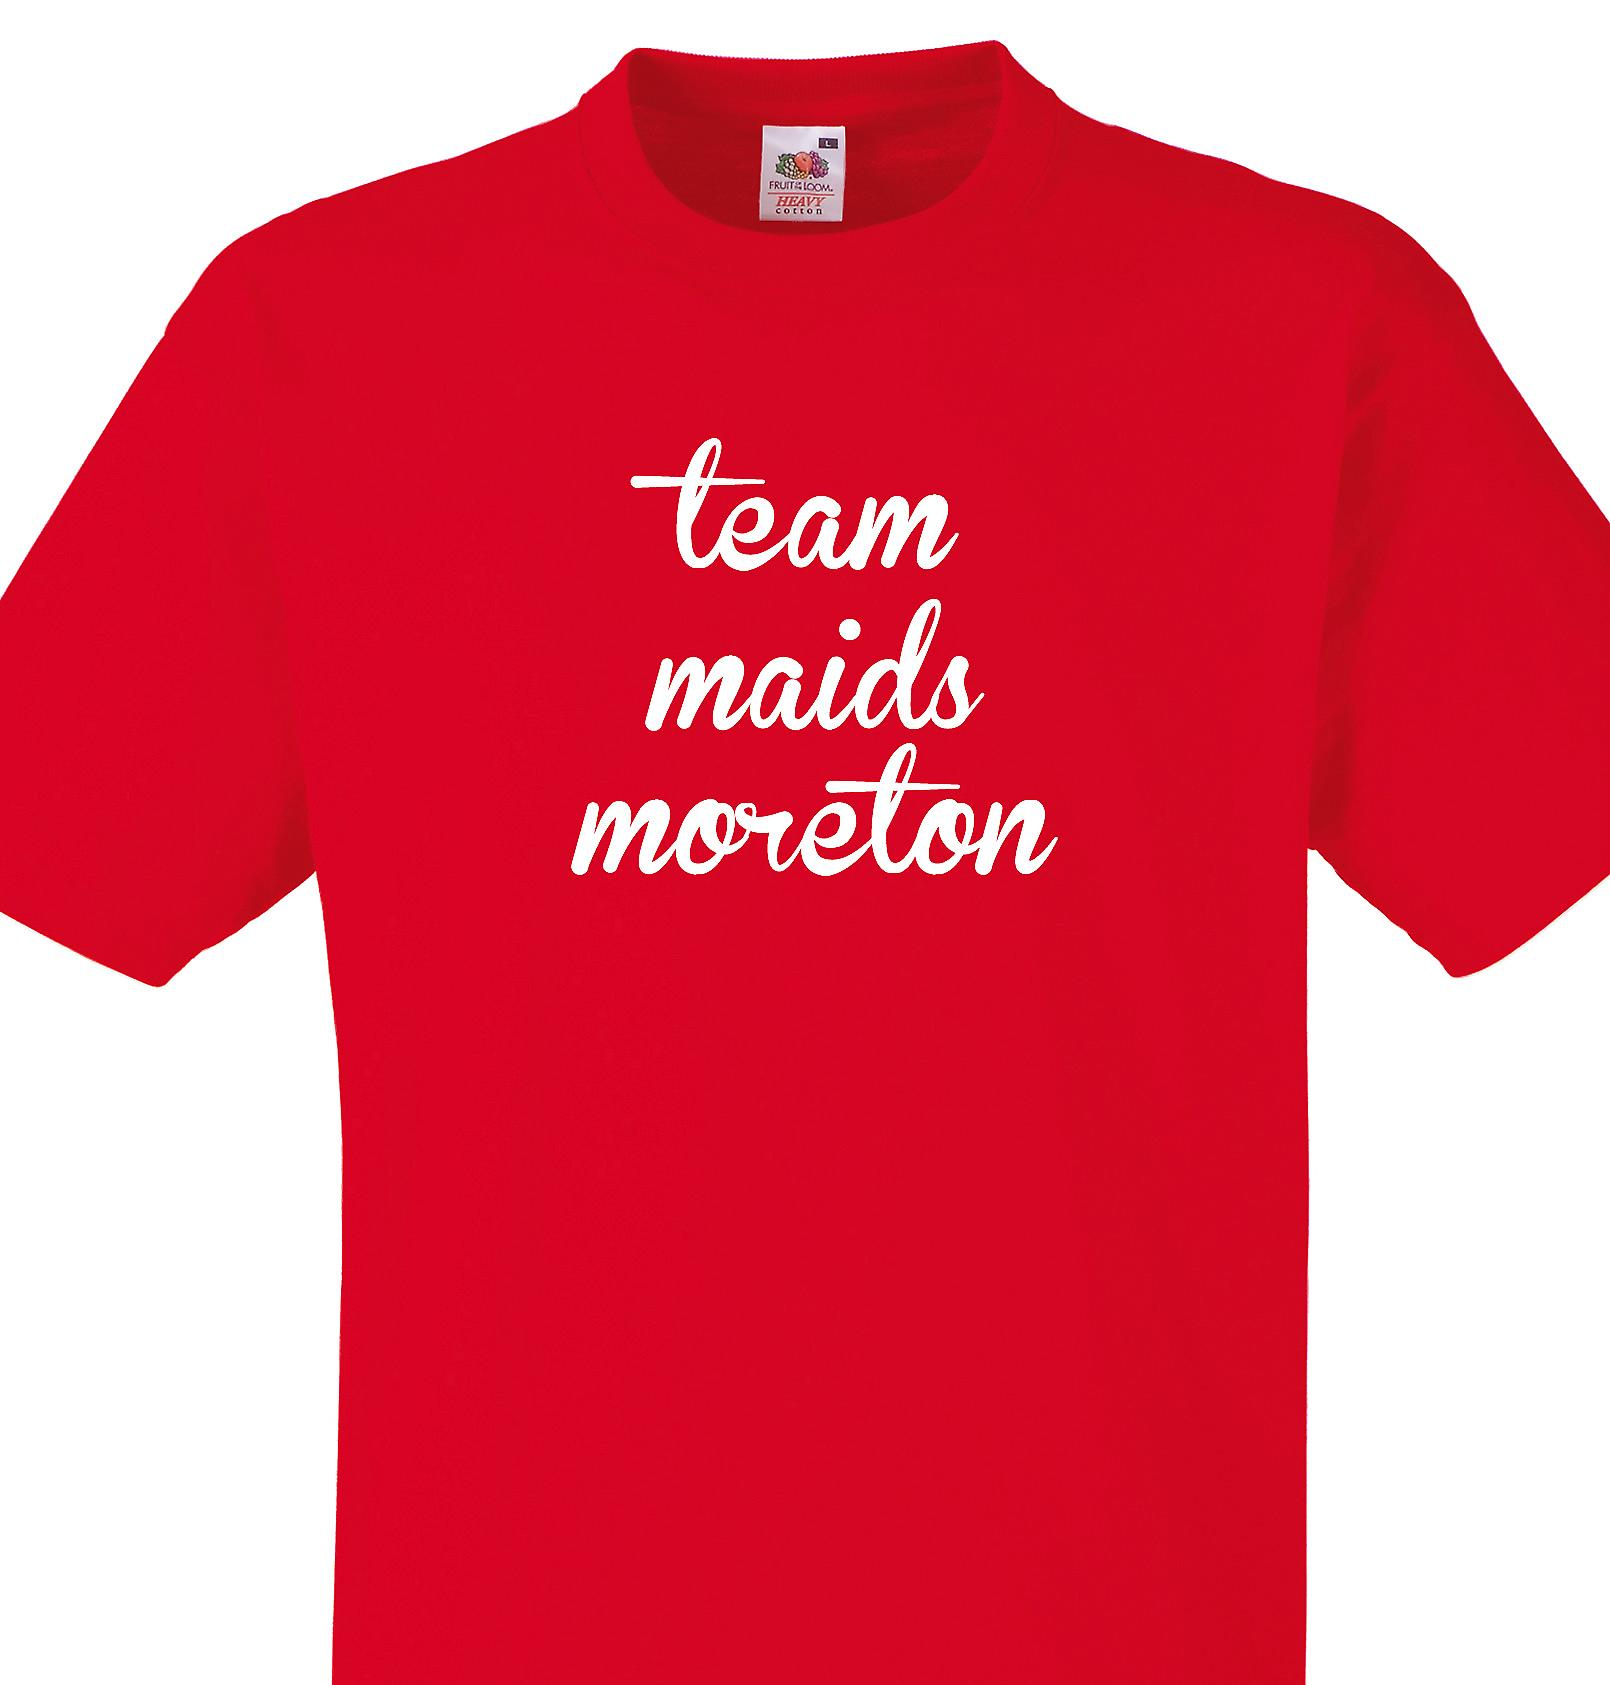 Team Maids moreton Red T shirt